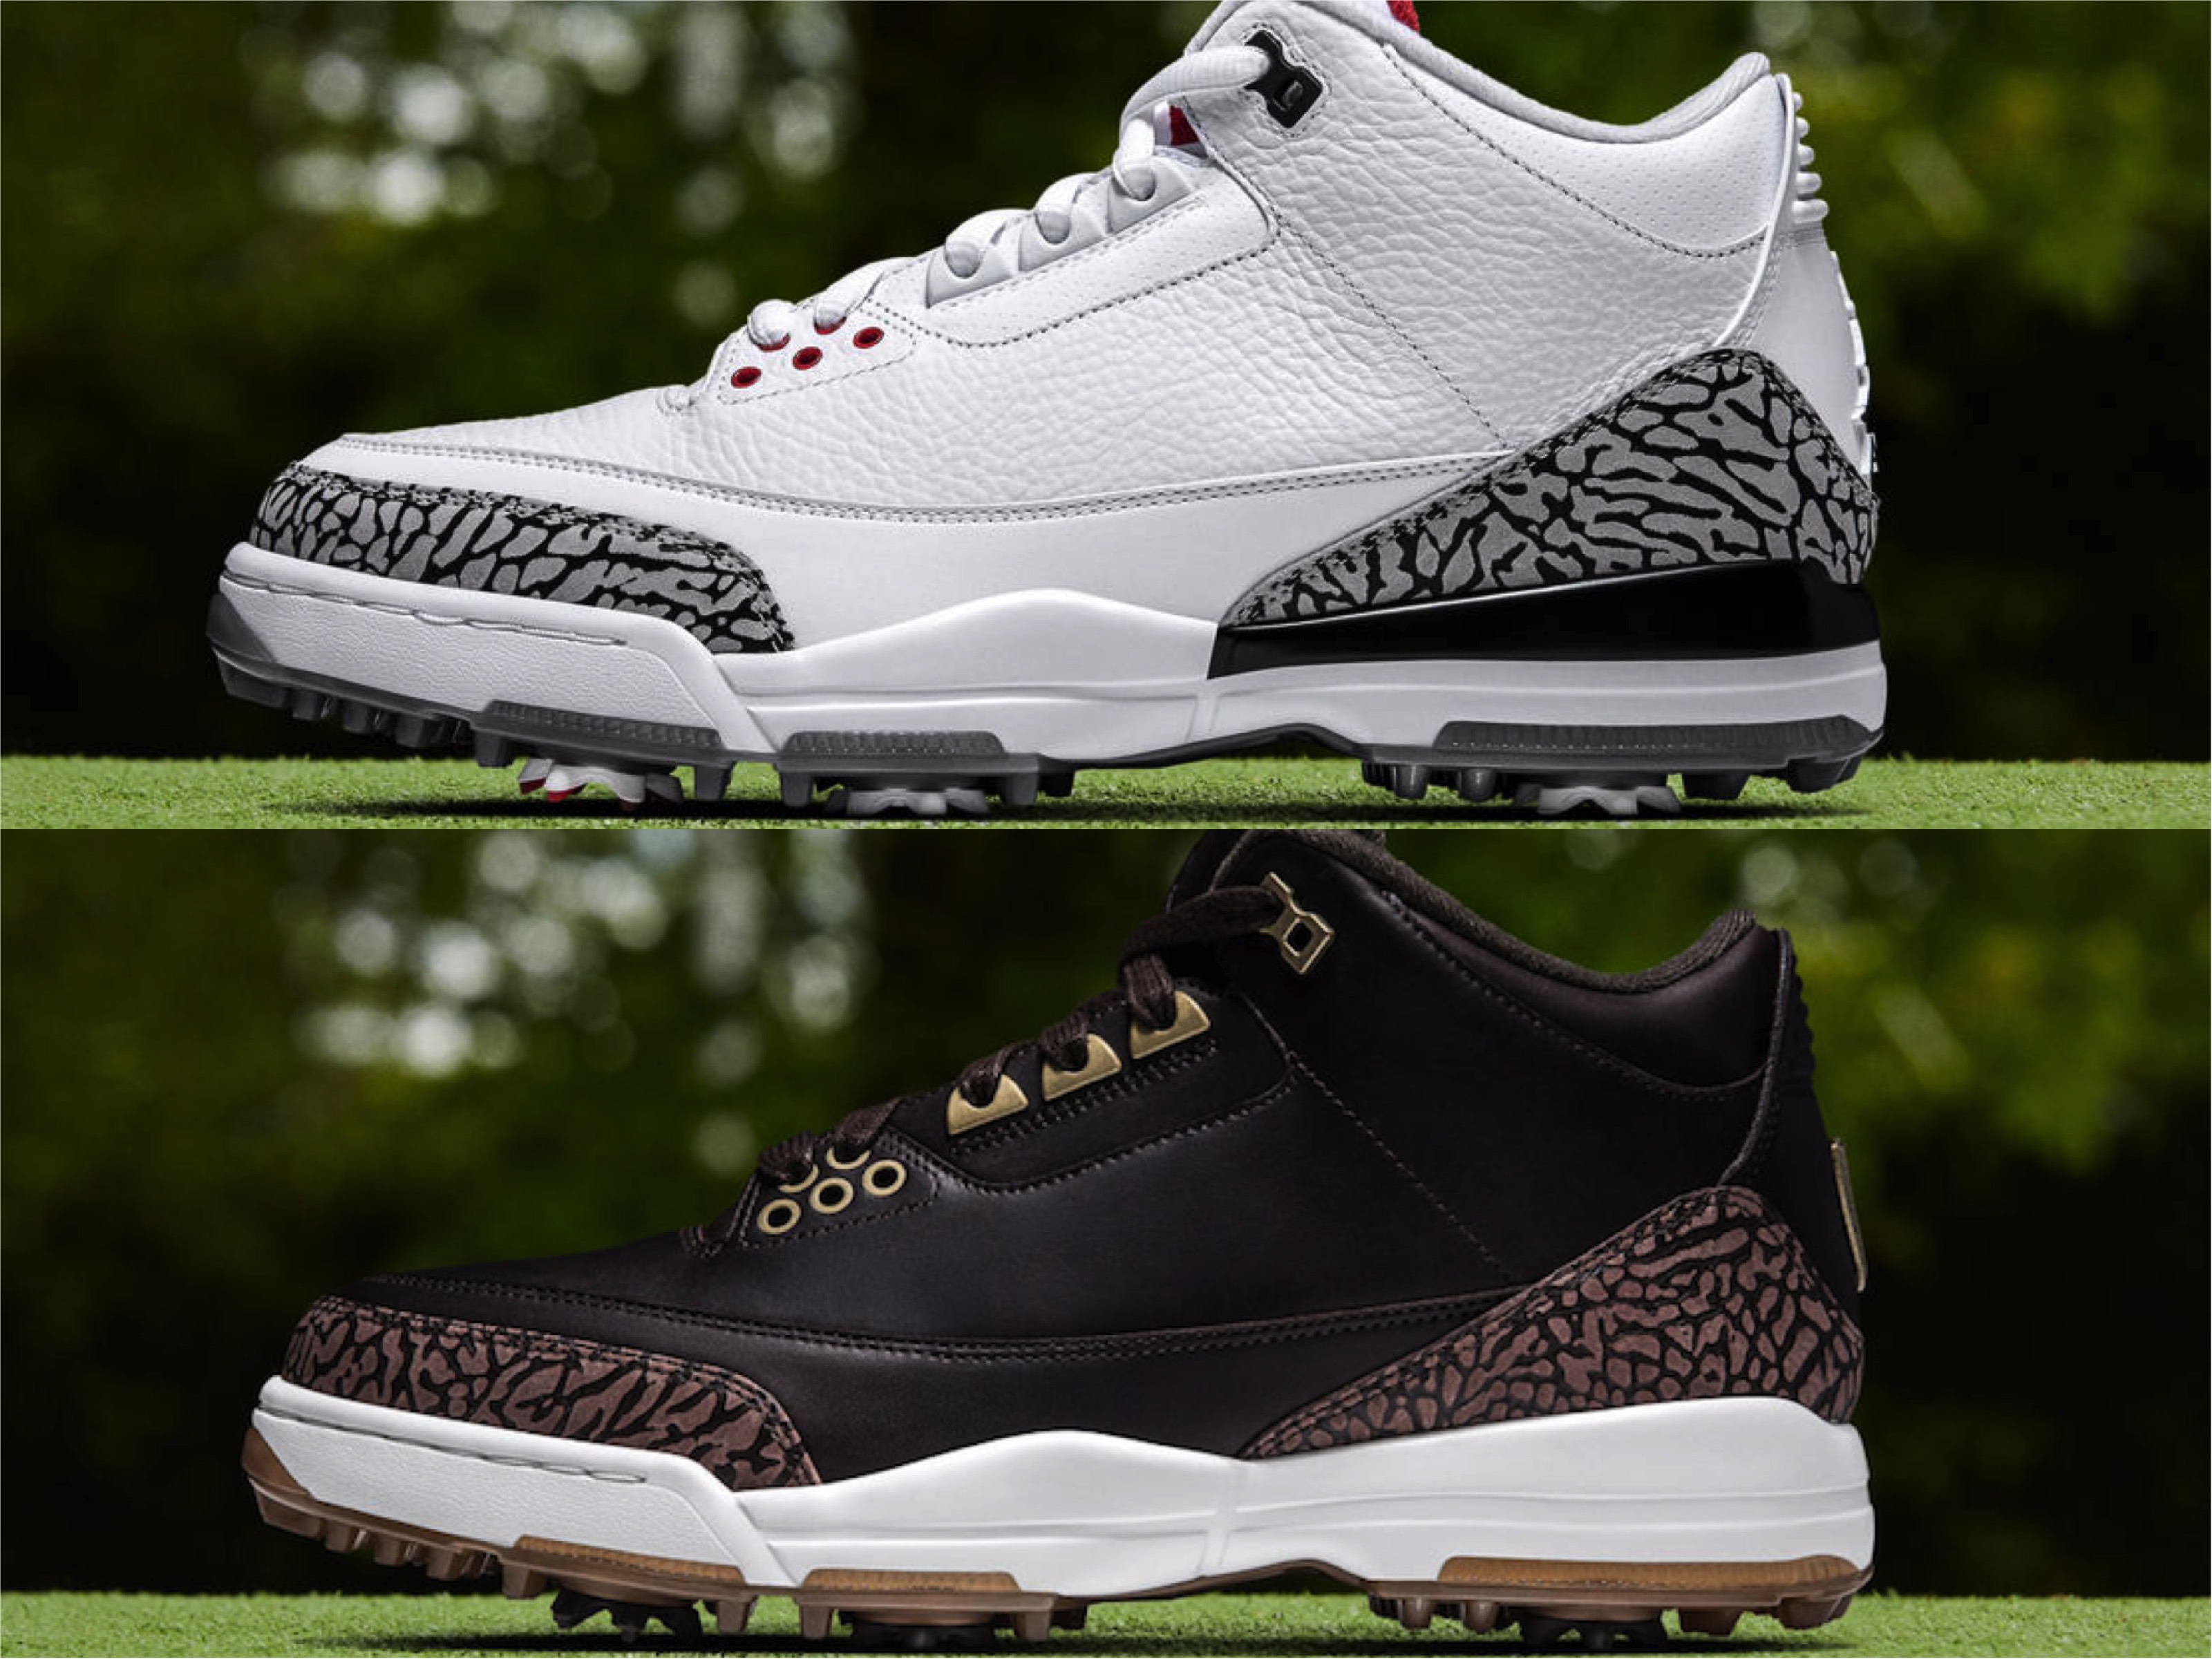 Nike to release air jordan iii golf shoes on feb 16 golfwrx - Photos of all jordan shoes ...